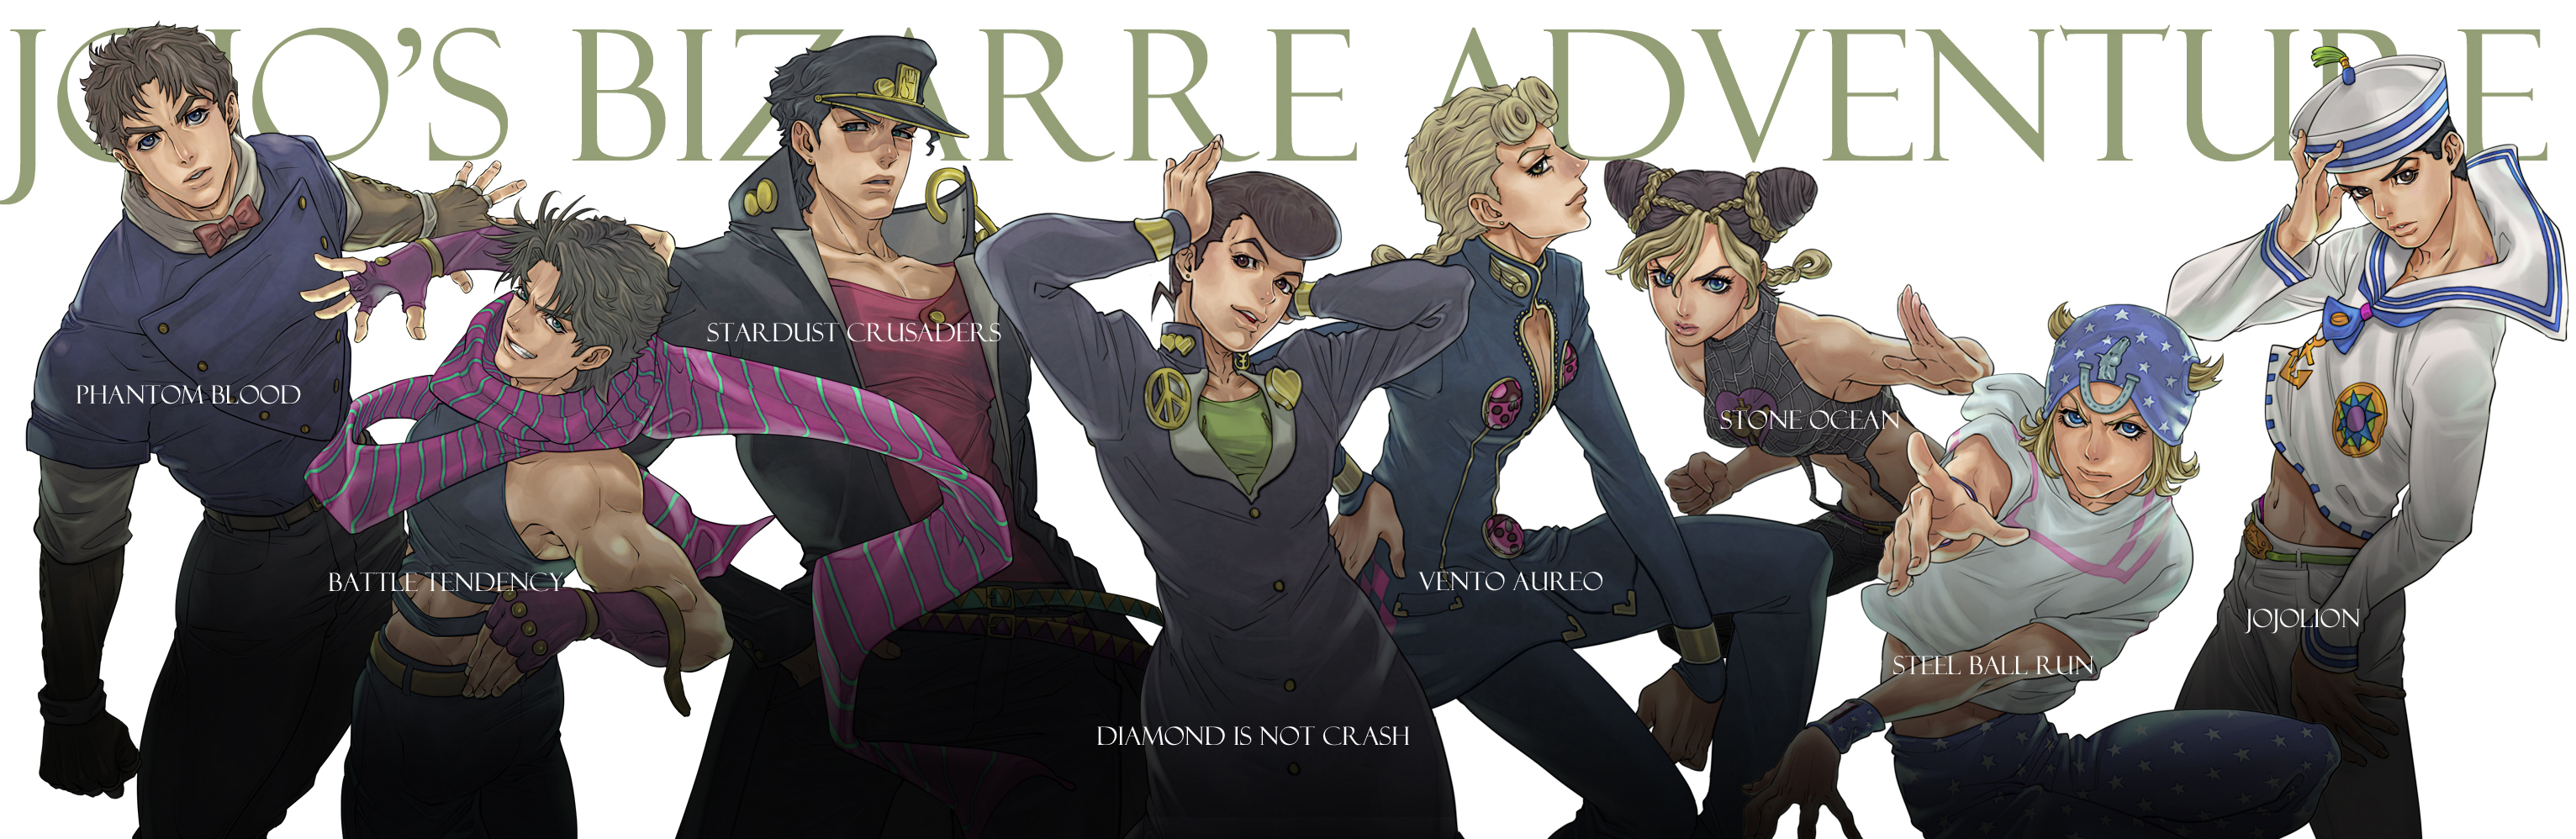 Free Download Vento Aureo Golden Wind Jojo No Kimyou Na Bouken